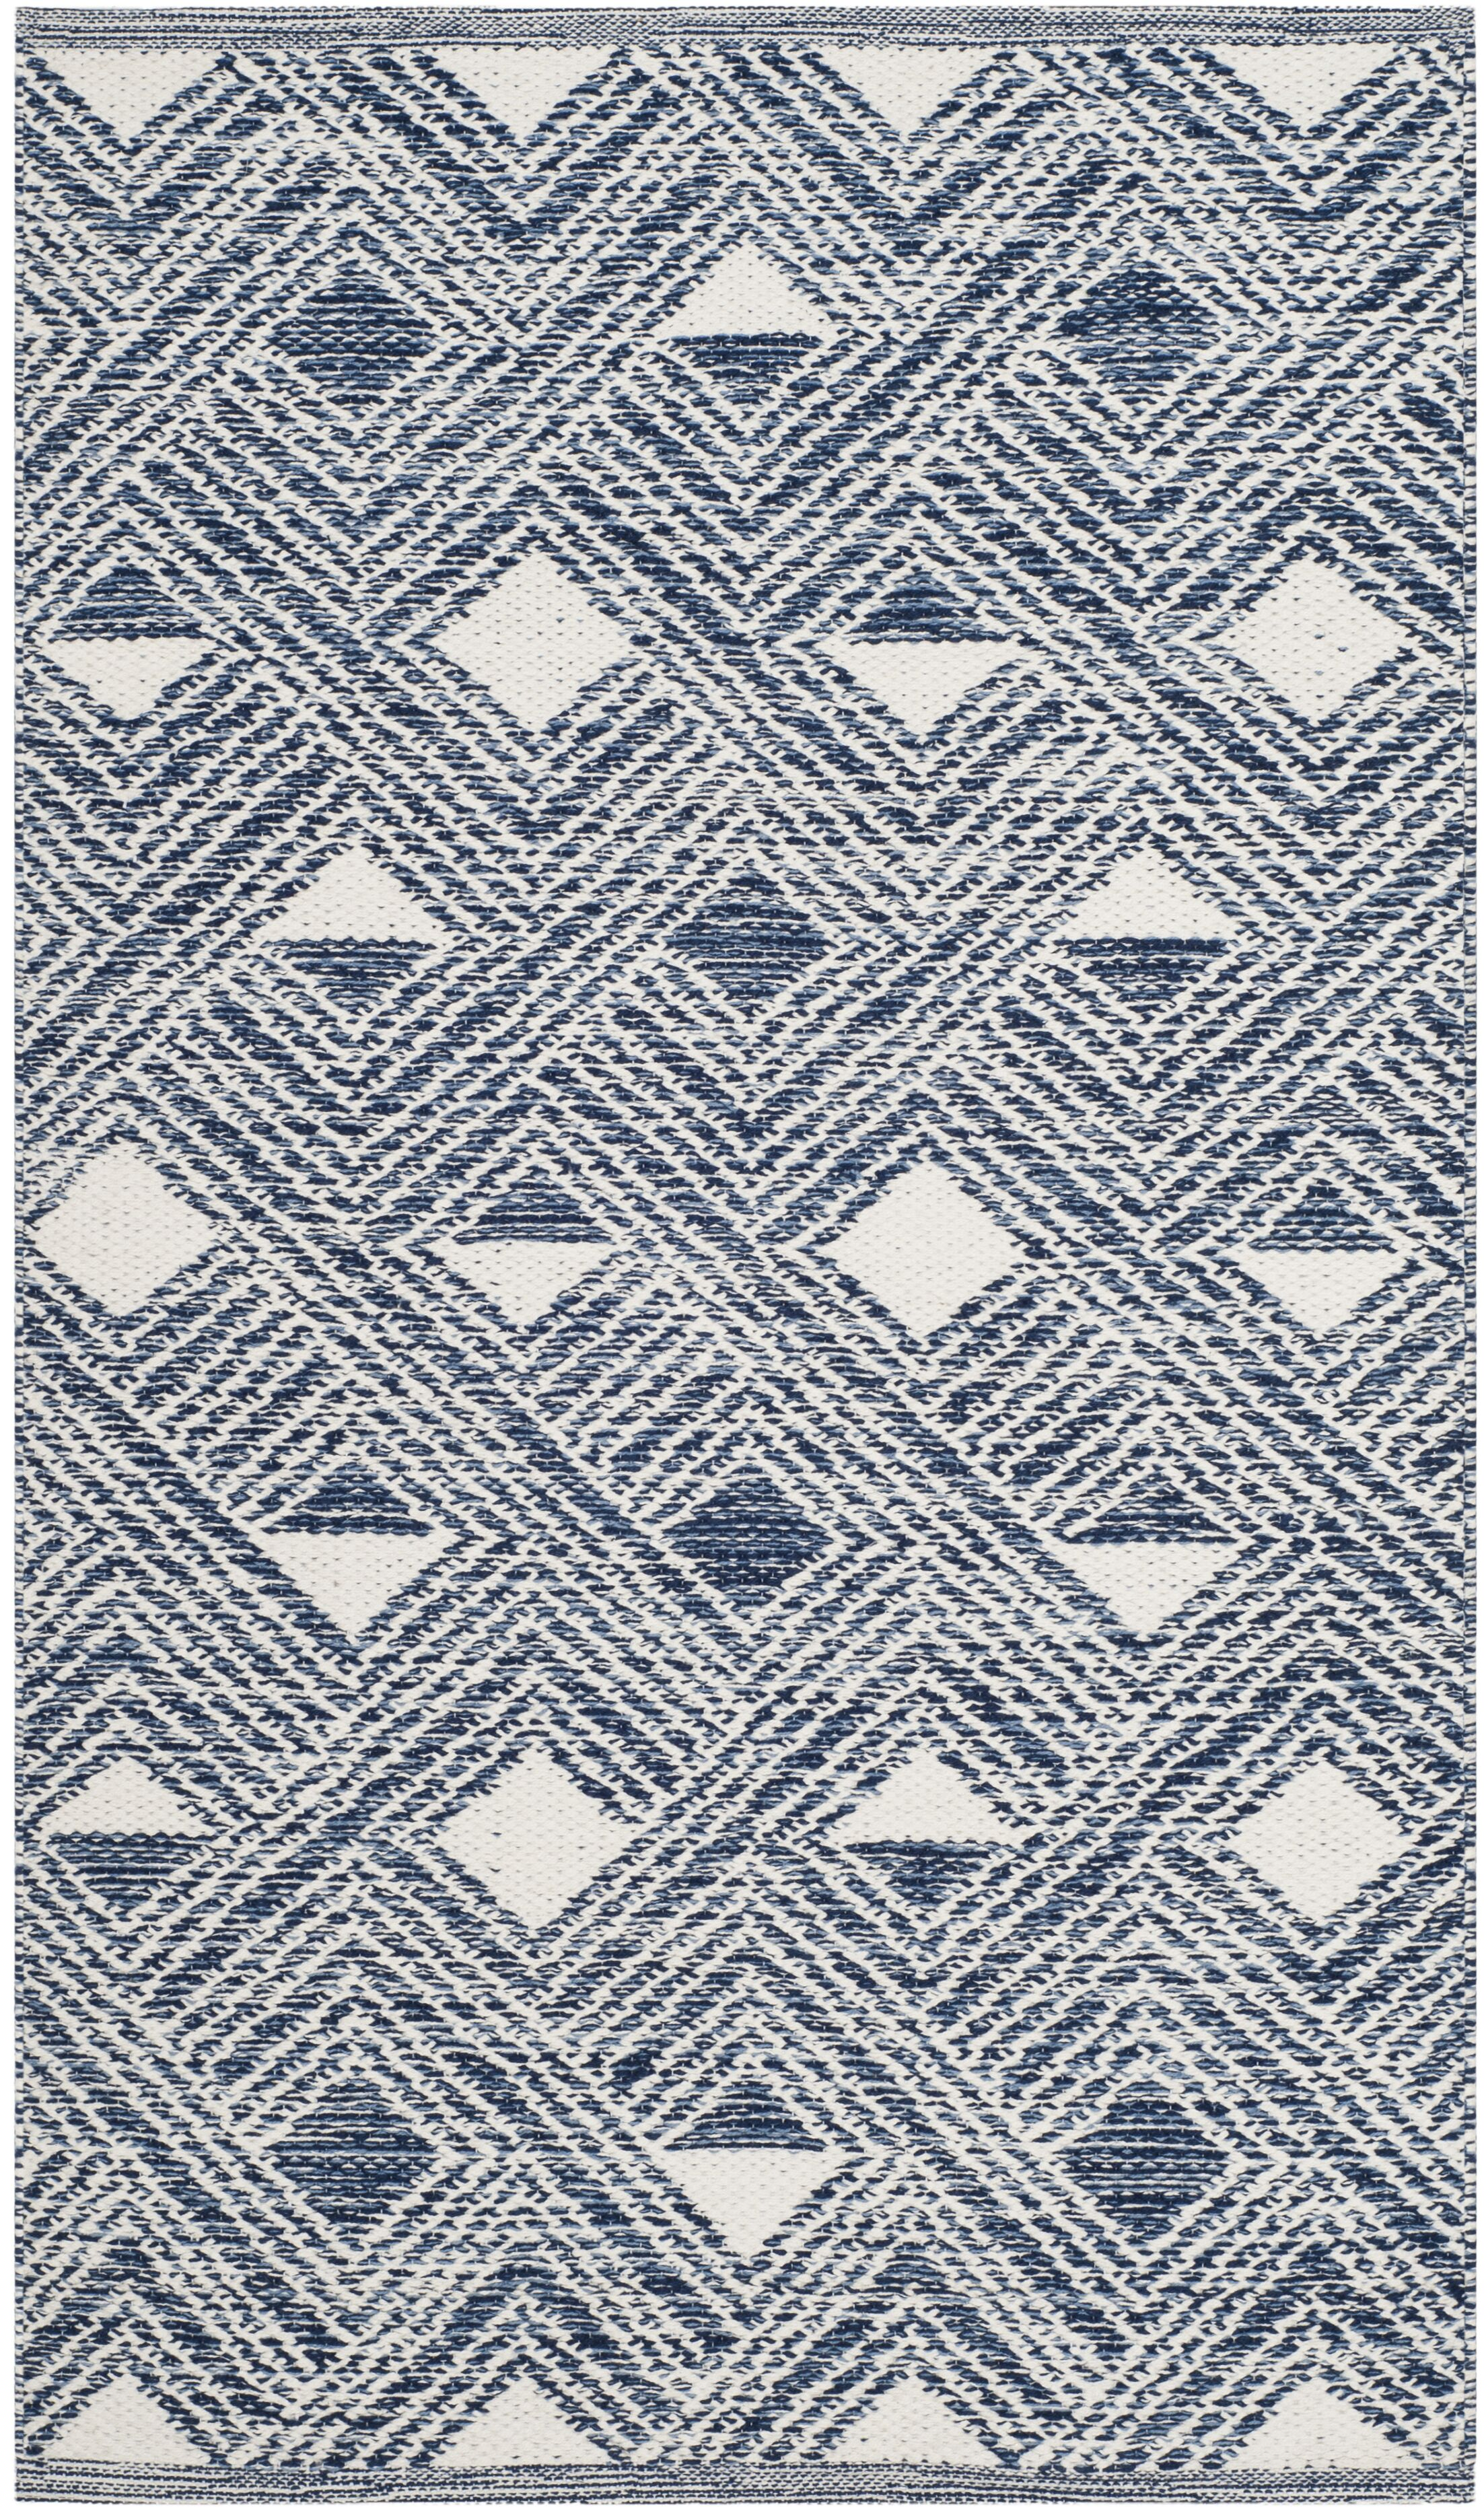 Dominica Hand-Woven Navy/Ivory Area Rug Rug Size: Rectangle 8' x 10'